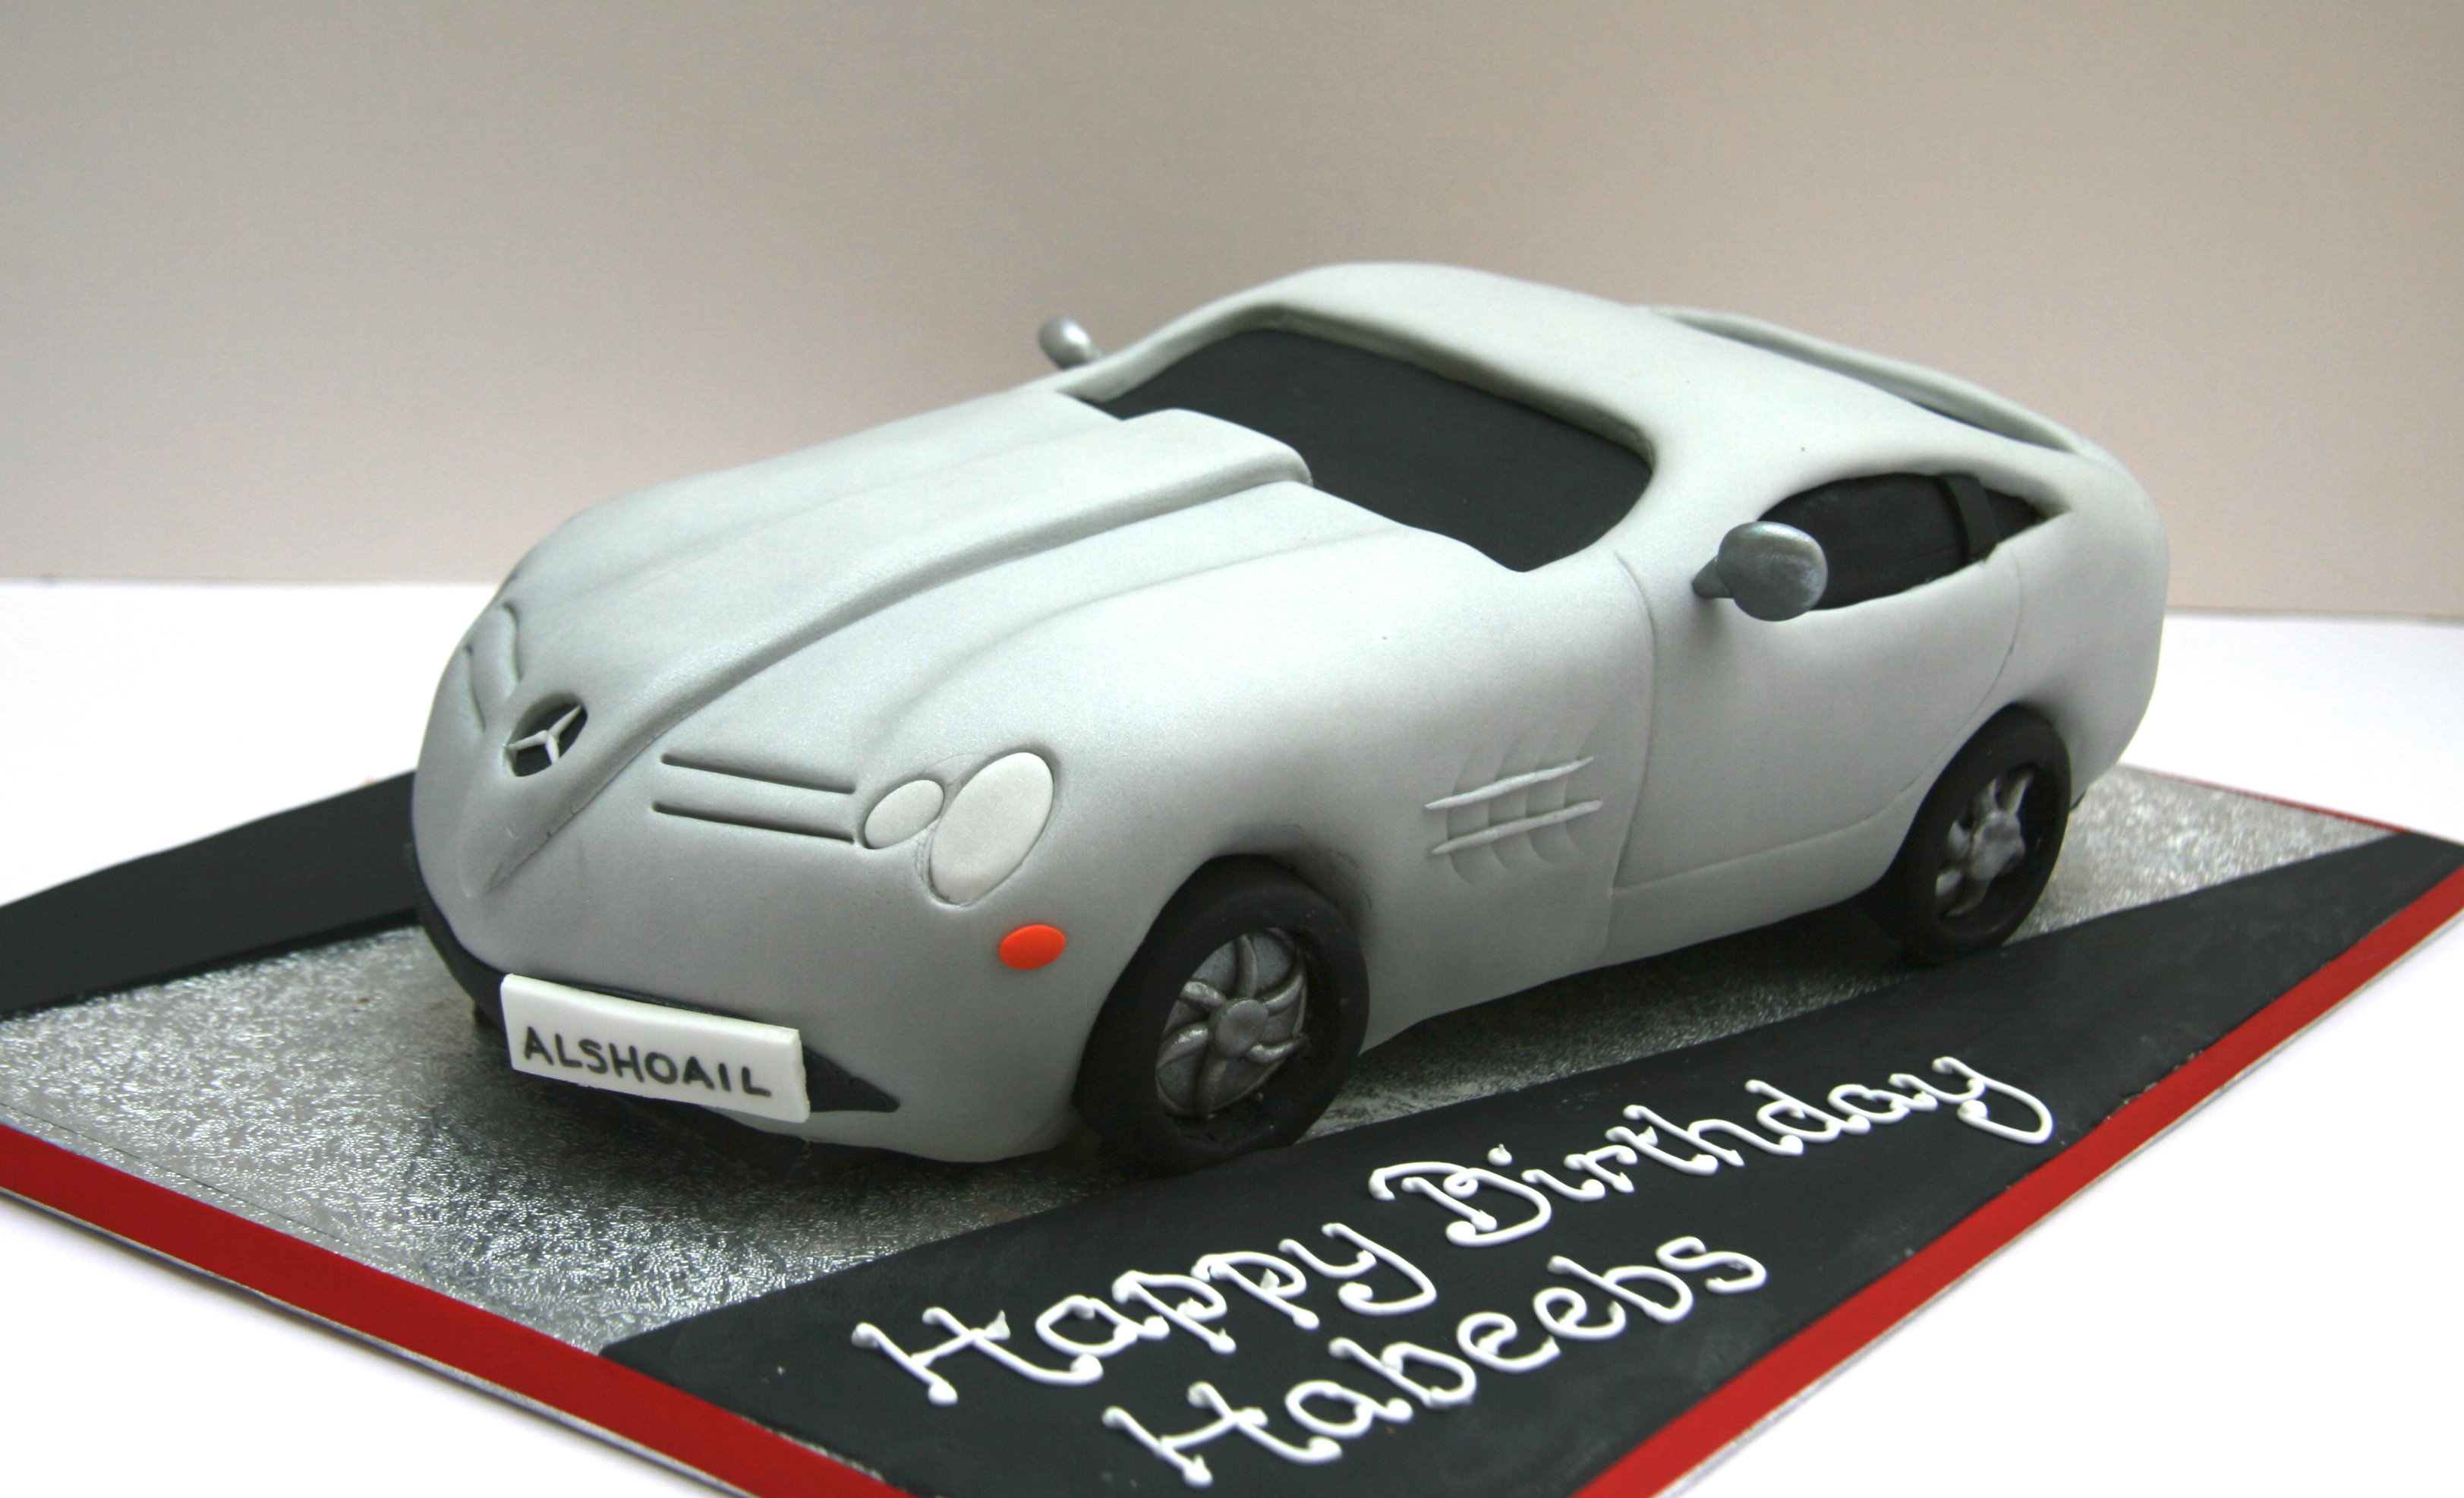 Mercedes sports car birthday cake london etoile bakery for Mercedes benz cake design